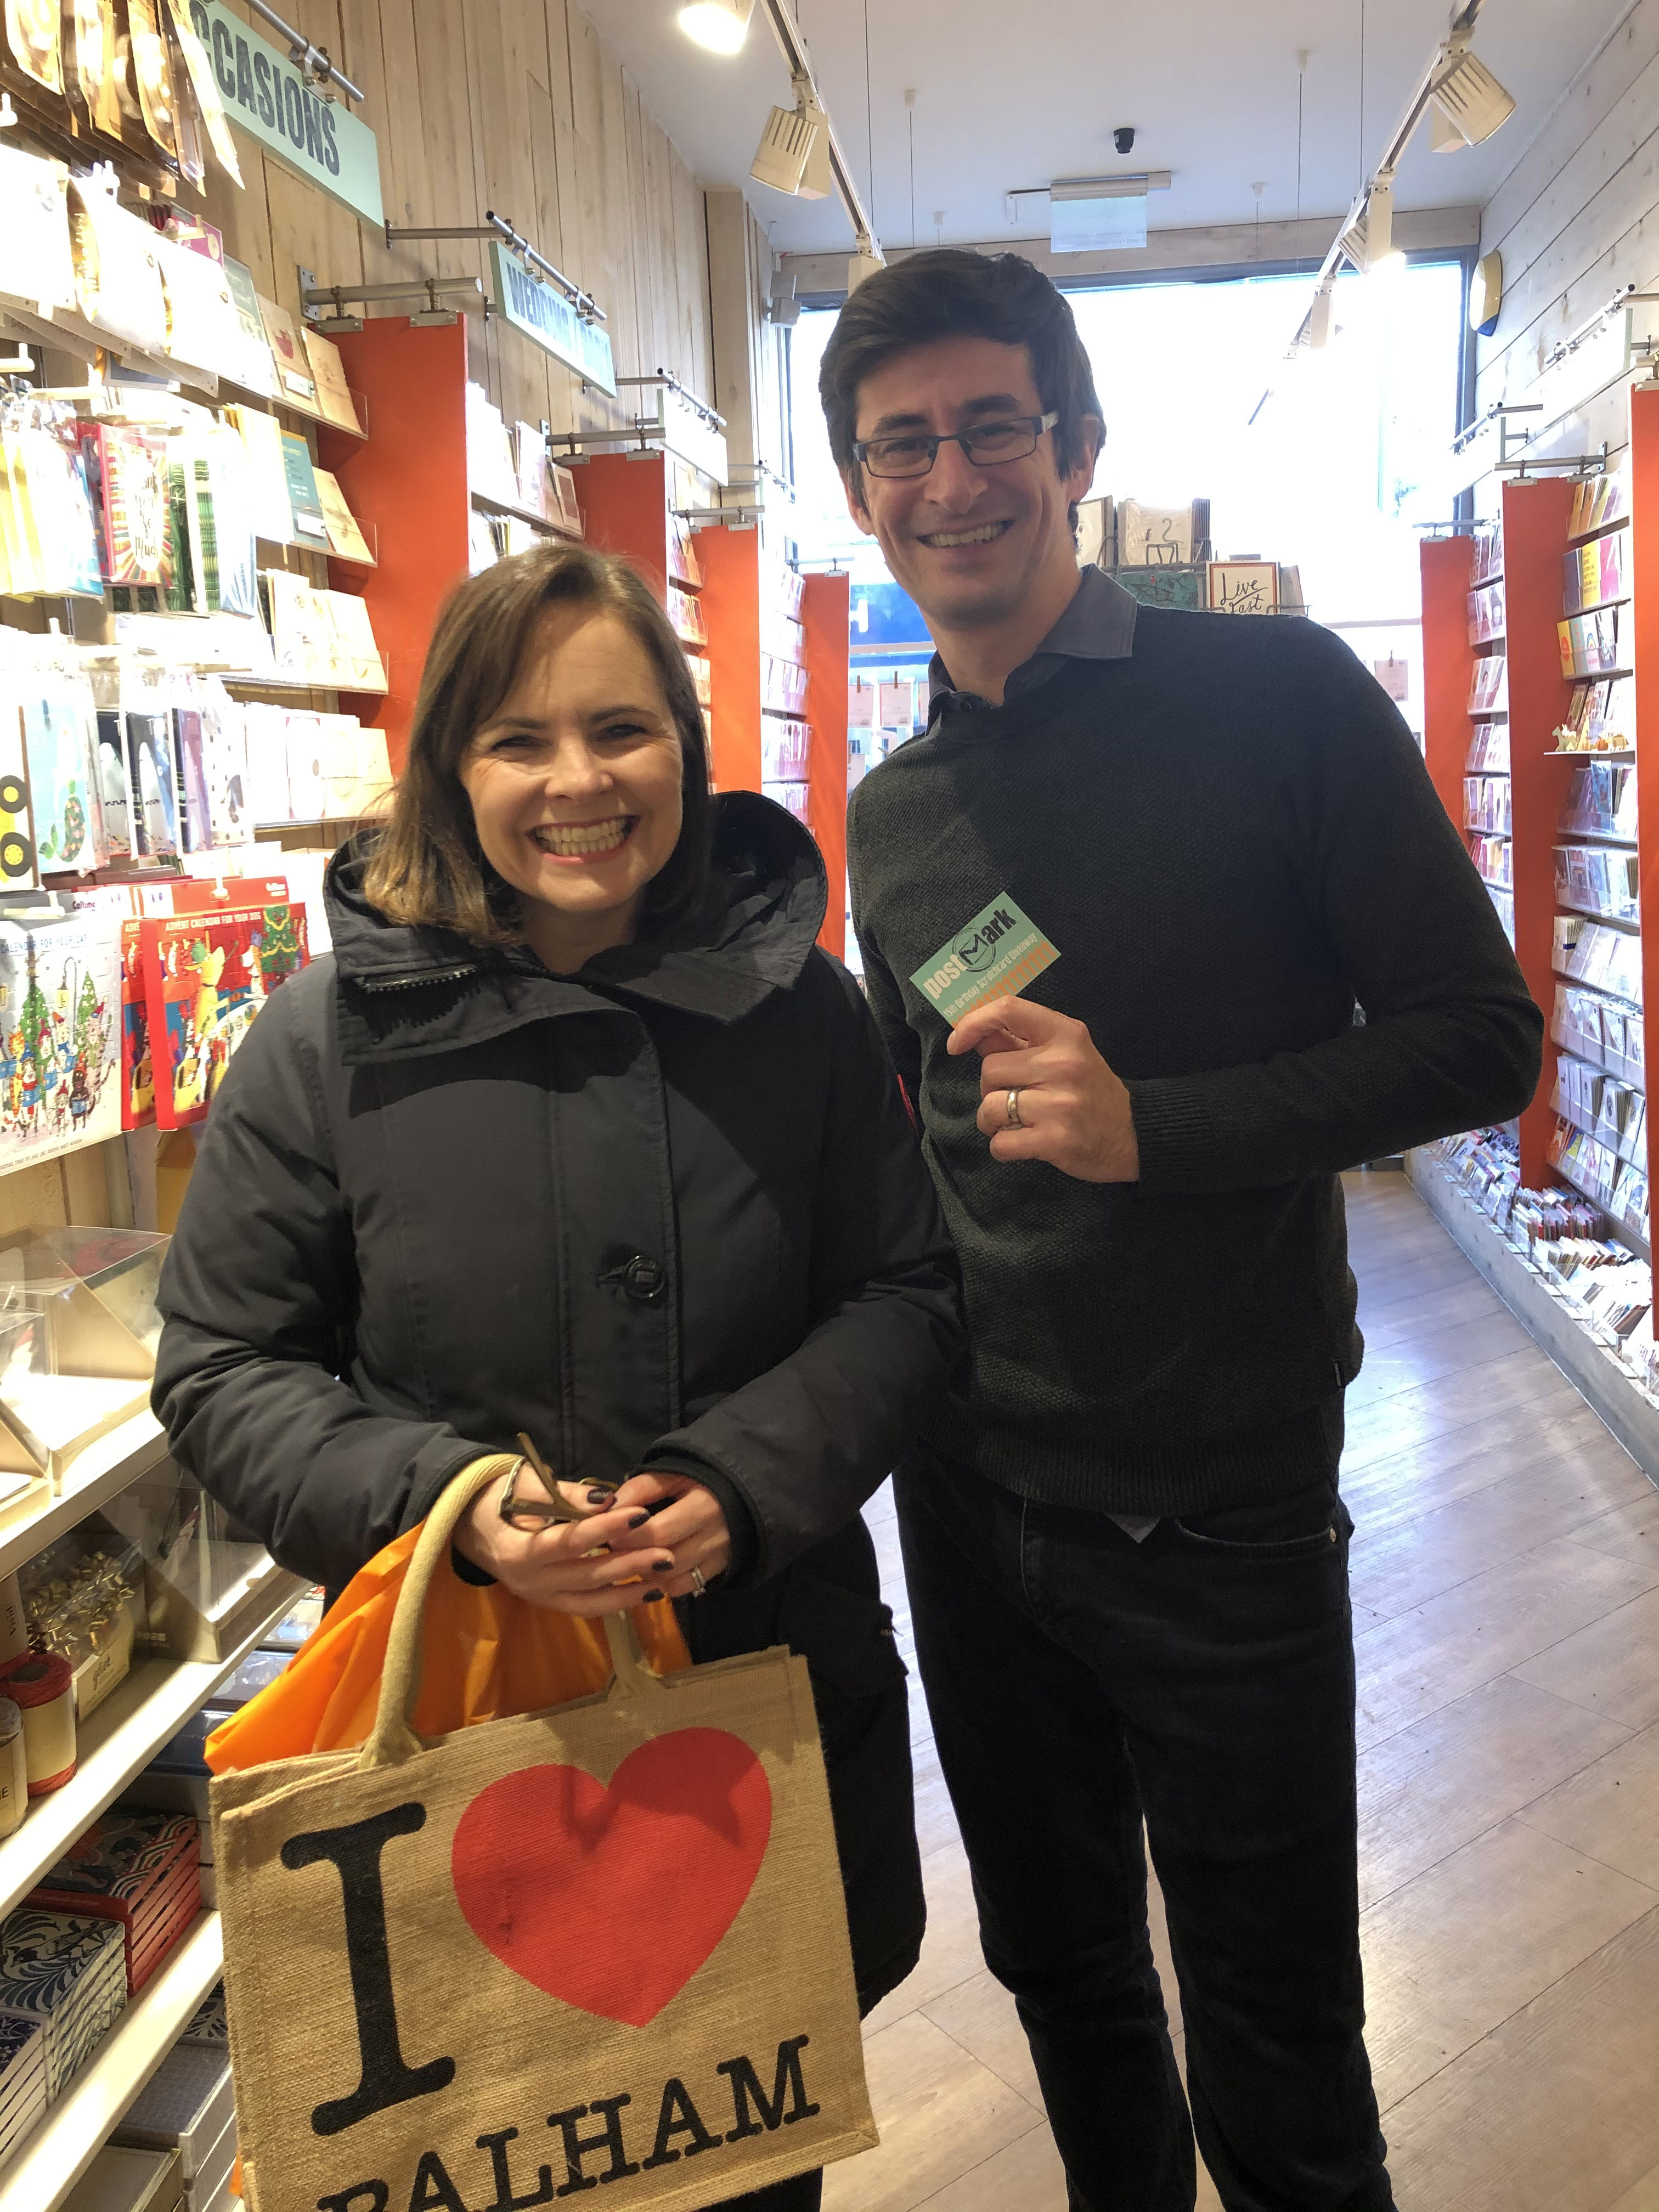 Above: Mark Janson-Smith in the Balham store with a customer.